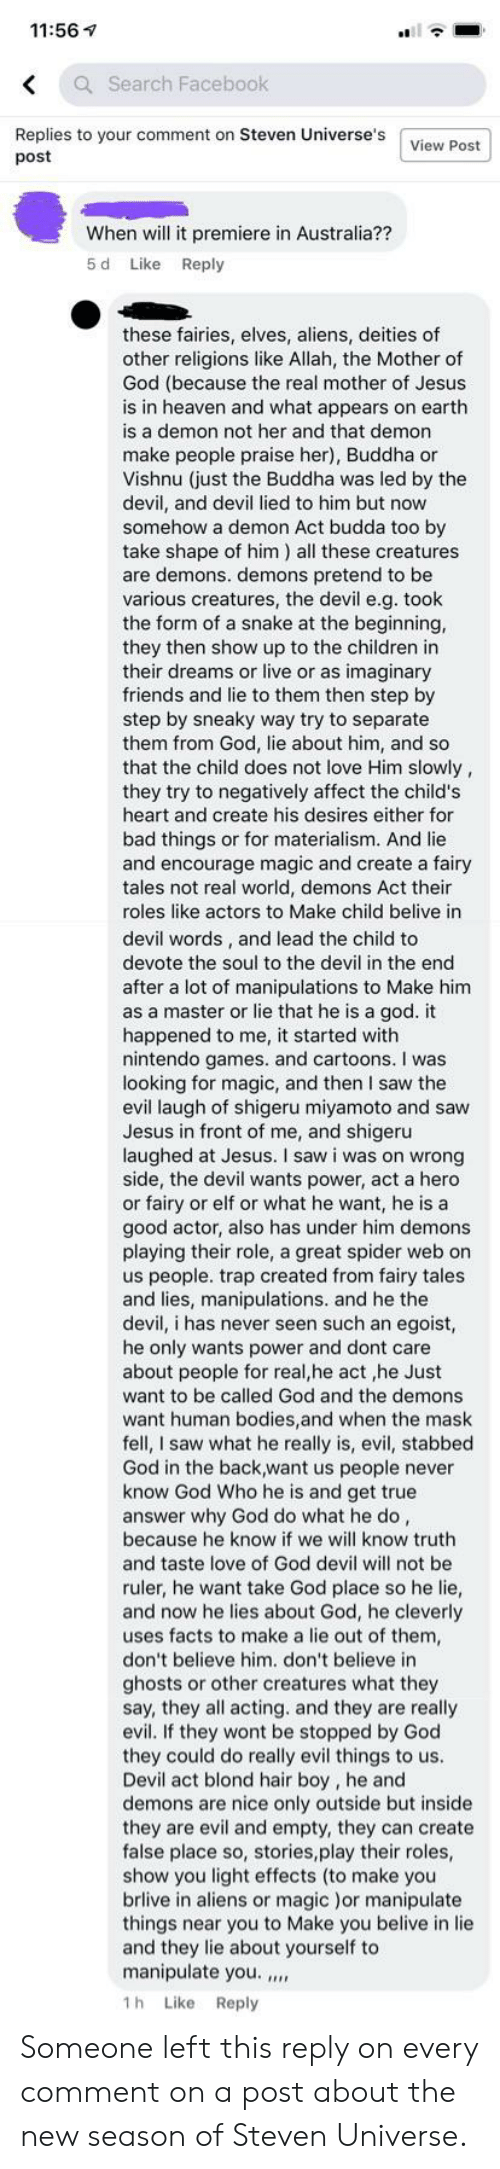 Bad, Bodies , and Children: 11:56  Q Search Facebook  Replies to your comment on Steven Universe's  post  View Post  When will it premiere in Australia??  5 d  Like  Reply  these fairies, elves, aliens, deities of  other religions like Allah, the Mother of  God (because the real mother of Jesus  is in heaven and what appears on earth  is a demon not her and that demon  make people praise her), Buddha or  Vishnu (just the Buddha was led by the  devil, and devil lied to him but now  somehow a demon Act budda too by  take shape of him) all these creatures  are demons. demons pretend to be  various creatures, the devil e.g. took  the form of a snake at the beginning,  they then show up to the children in  their dreams or live or as imaginary  friends and lie to them then step by  step by sneaky way try to separate  them from God, lie about him, and so  that the child does not love Him slowly,  they try to negatively affect the child's  heart and create his desires either for  bad things or for materialism. And lie  and encourage magic and create a fairy  tales not real world, demons Act their  roles like actors to Make child belive in  devil words, and lead the child to  devote the soul to the devil in the end  after a lot of manipulations to Make him  as a master or lie that he is a god. it  happened to me, it started with  nintendo games. and cartoons. I was  looking for magic, and then I saw the  evil laugh of shigeru miyamoto and saw  Jesus in front of me, and shigeru  laughed at Jesus. I saw i was on wrong  side, the devil wants power, act a hero  or fairy or elf or what he want, he is a  good actor, also has under him demons  playing their role, a great spider web on  us people. trap created from fairy tales  and lies, manipulations. and he the  devil, i has never seen such an egoist,  he only wants power and dont care  about people for real,he act ,he Just  want to be called God and the demons  want human bodies,and when the mask  fell, I saw what he really is, evil, stabbed  God in the back,want us people never  know God Who he is and get true  answer why God do what he do,  because he know if we will know truth  and taste love of God devil will not be  ruler, he want take God place so he lie,  and now he lies about God, he cleverly  uses facts to make a lie out of them,  don't believe him. don't believe in  ghosts or other creatures what they  say, they all acting. and they are really  evil. If they wont be stopped by God  they could do really evil things to us.  Devil act blond hair boy, he and  demons are nice only outside but inside  they are evil and empty, they can create  false place so, stories,play their roles,  show you light effects (to make you  brlive in aliens or magic )or manipulate  things near you to Make you belive in lie  and they lie about yourself to  manipulate you.  1h Like Reply Someone left this reply on every comment on a post about the new season of Steven Universe.